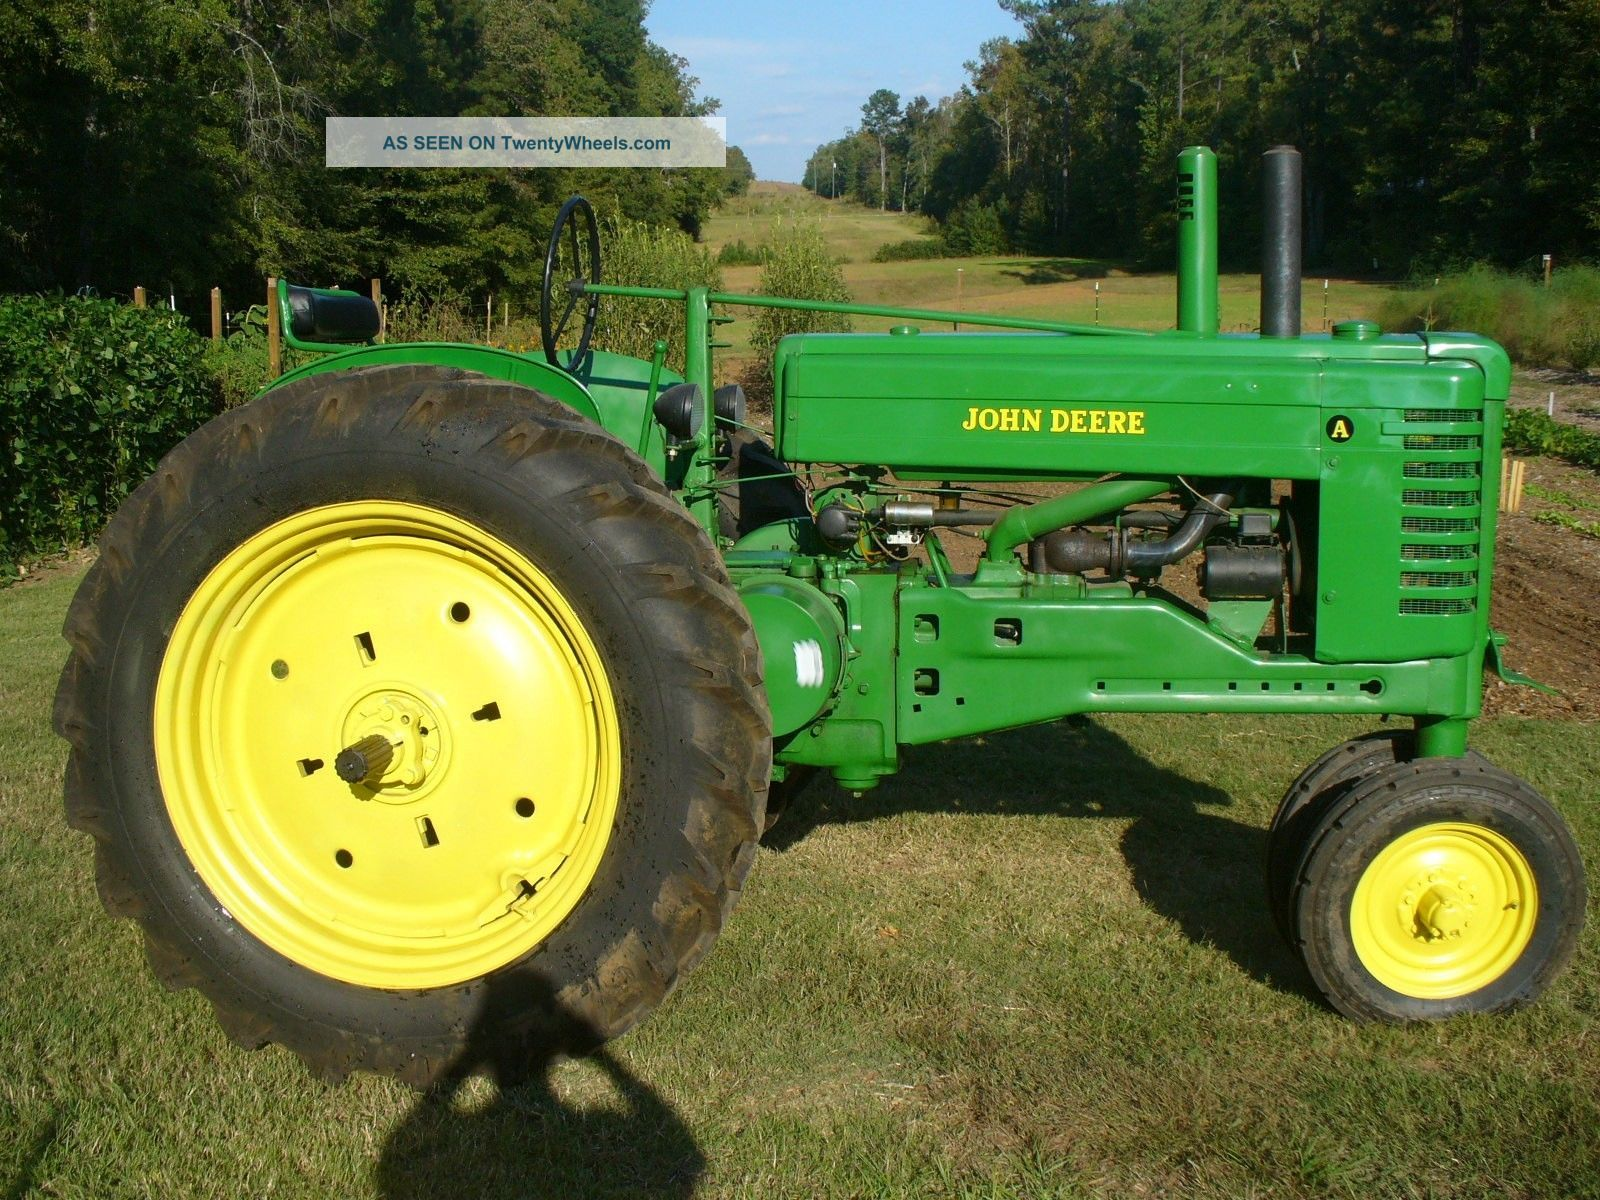 Old John Deere Farm Tractor on john deere toy farm tractors